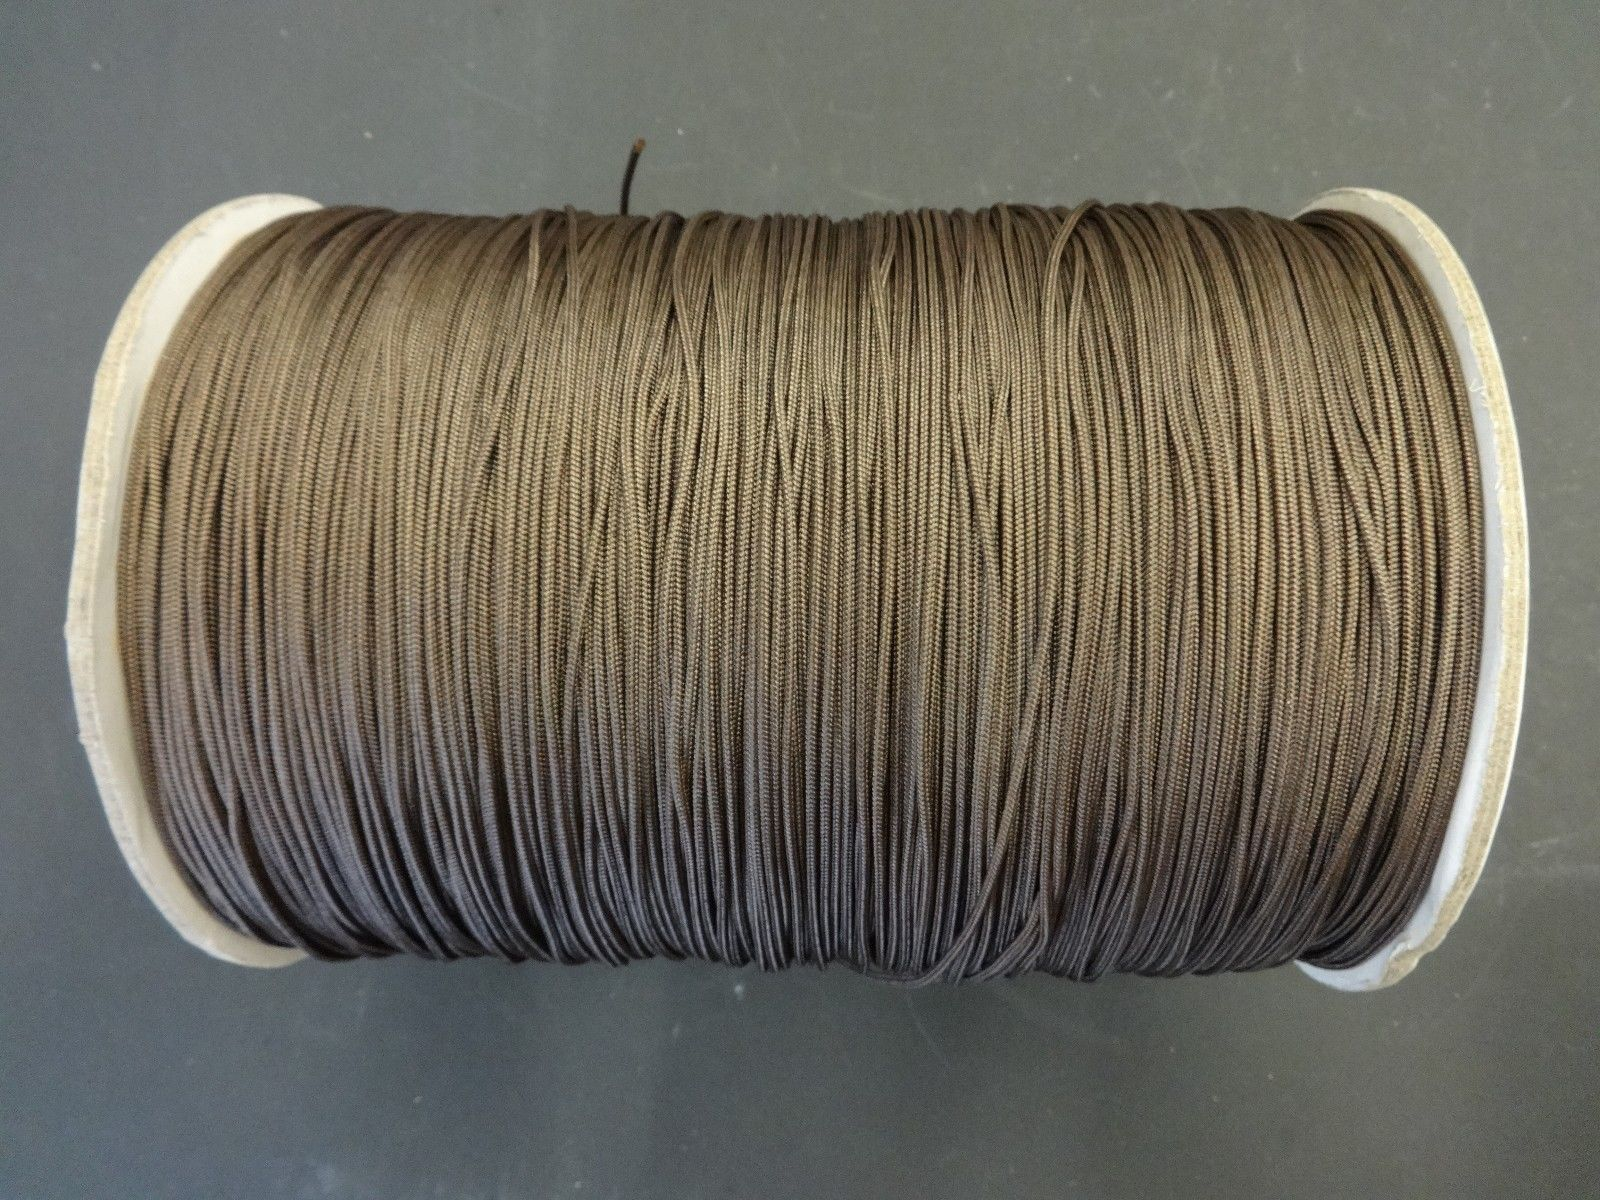 60 FEET:1.8mm CHAR BROWN LIFT CORD for ROMAN/PLEATED shade & HORIZONTAL blind